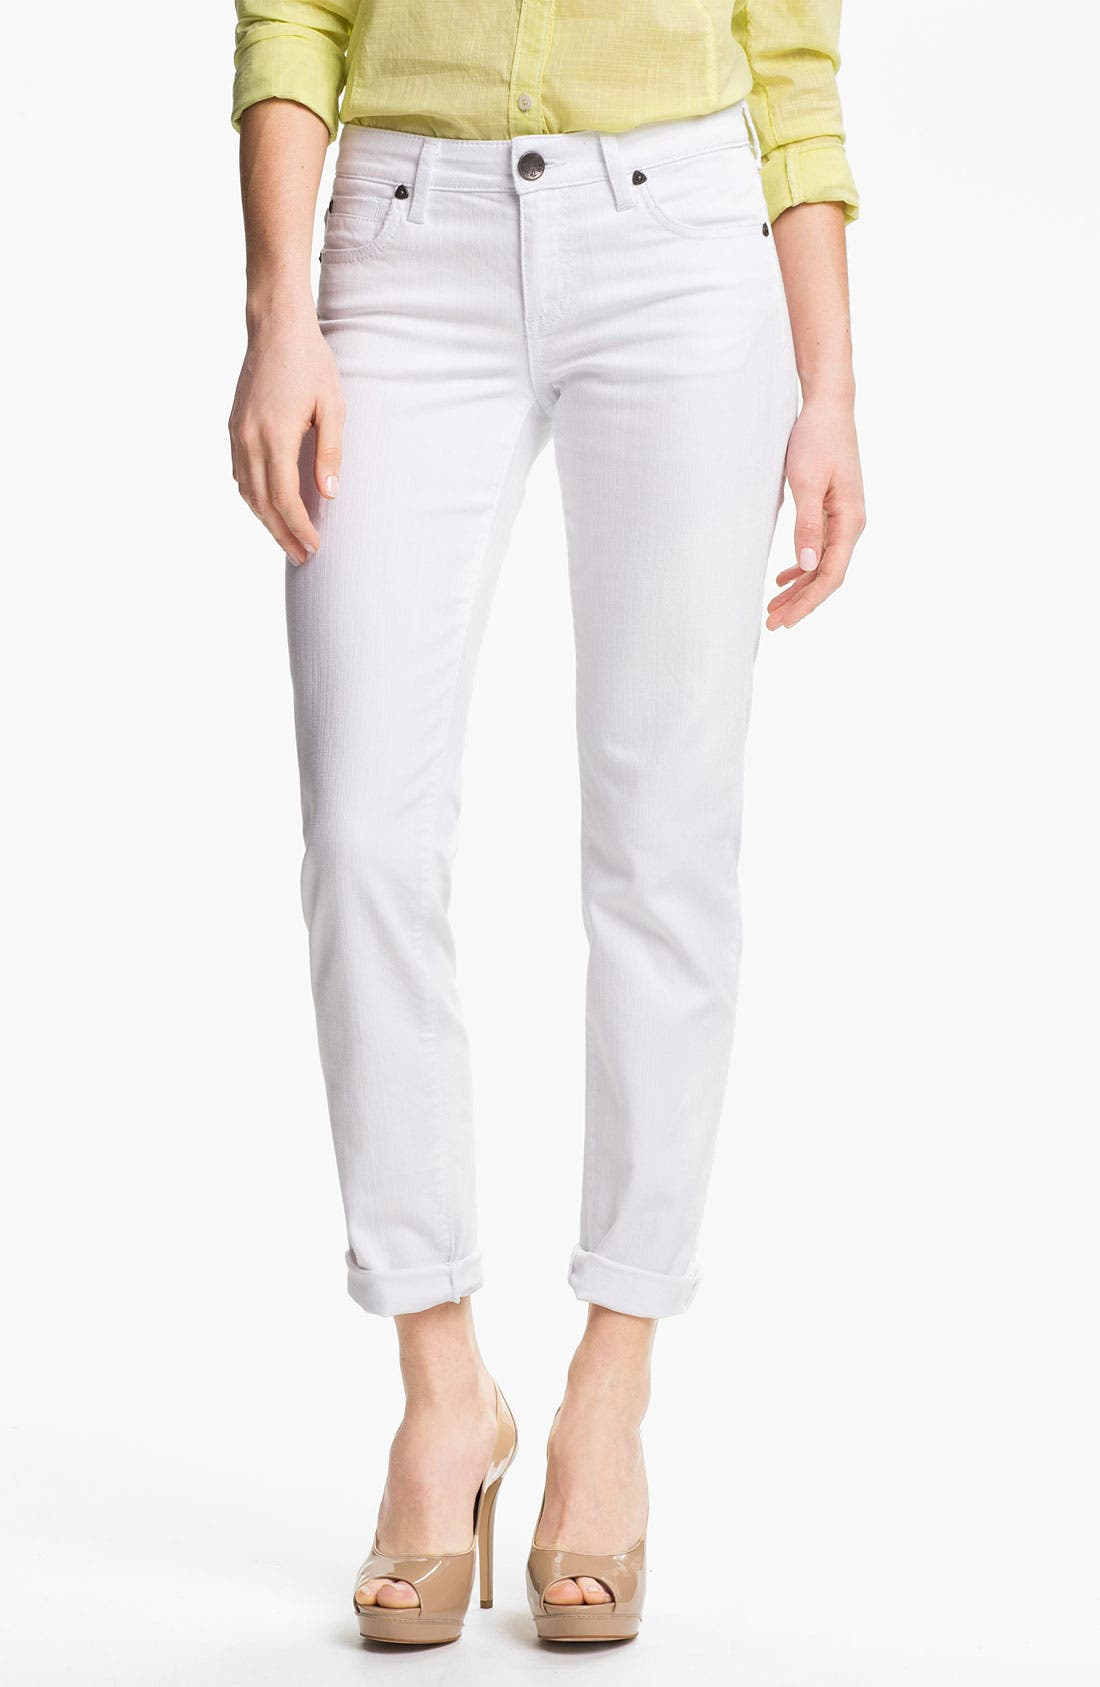 Main Image - KUT from the Kloth 'Catherine' Slim Boyfriend Jeans (White)